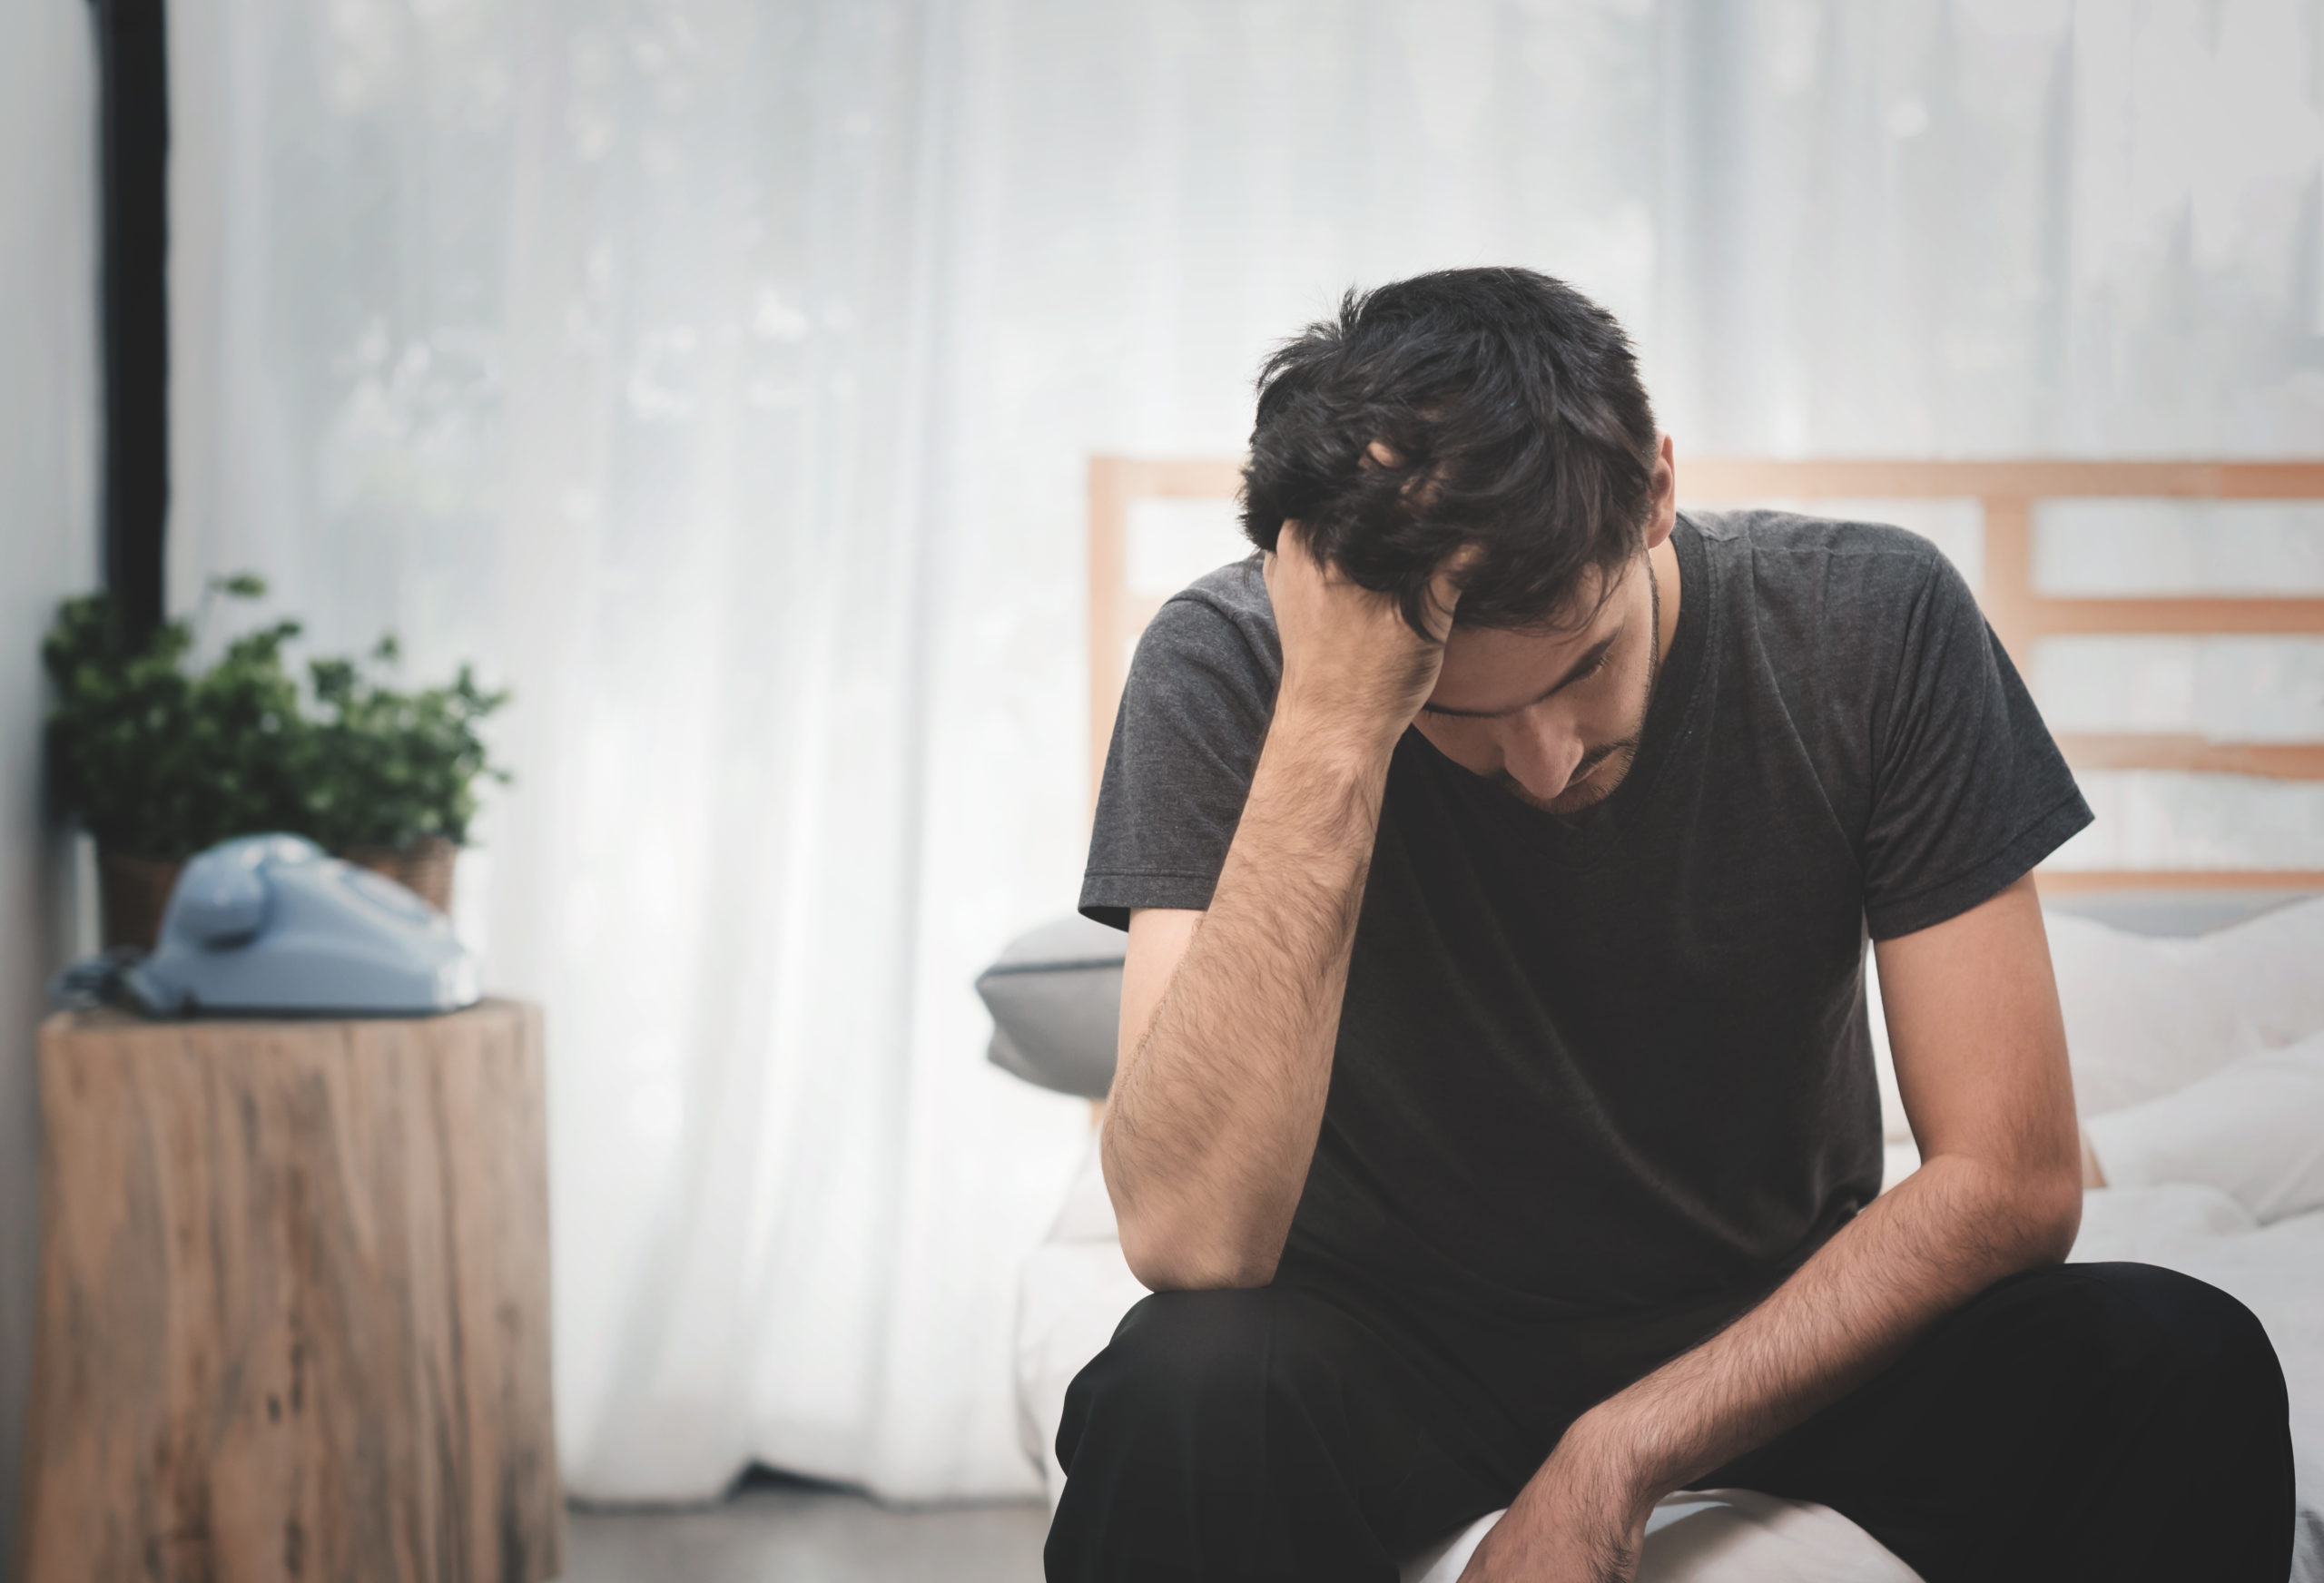 High stress levels can cause hair loss